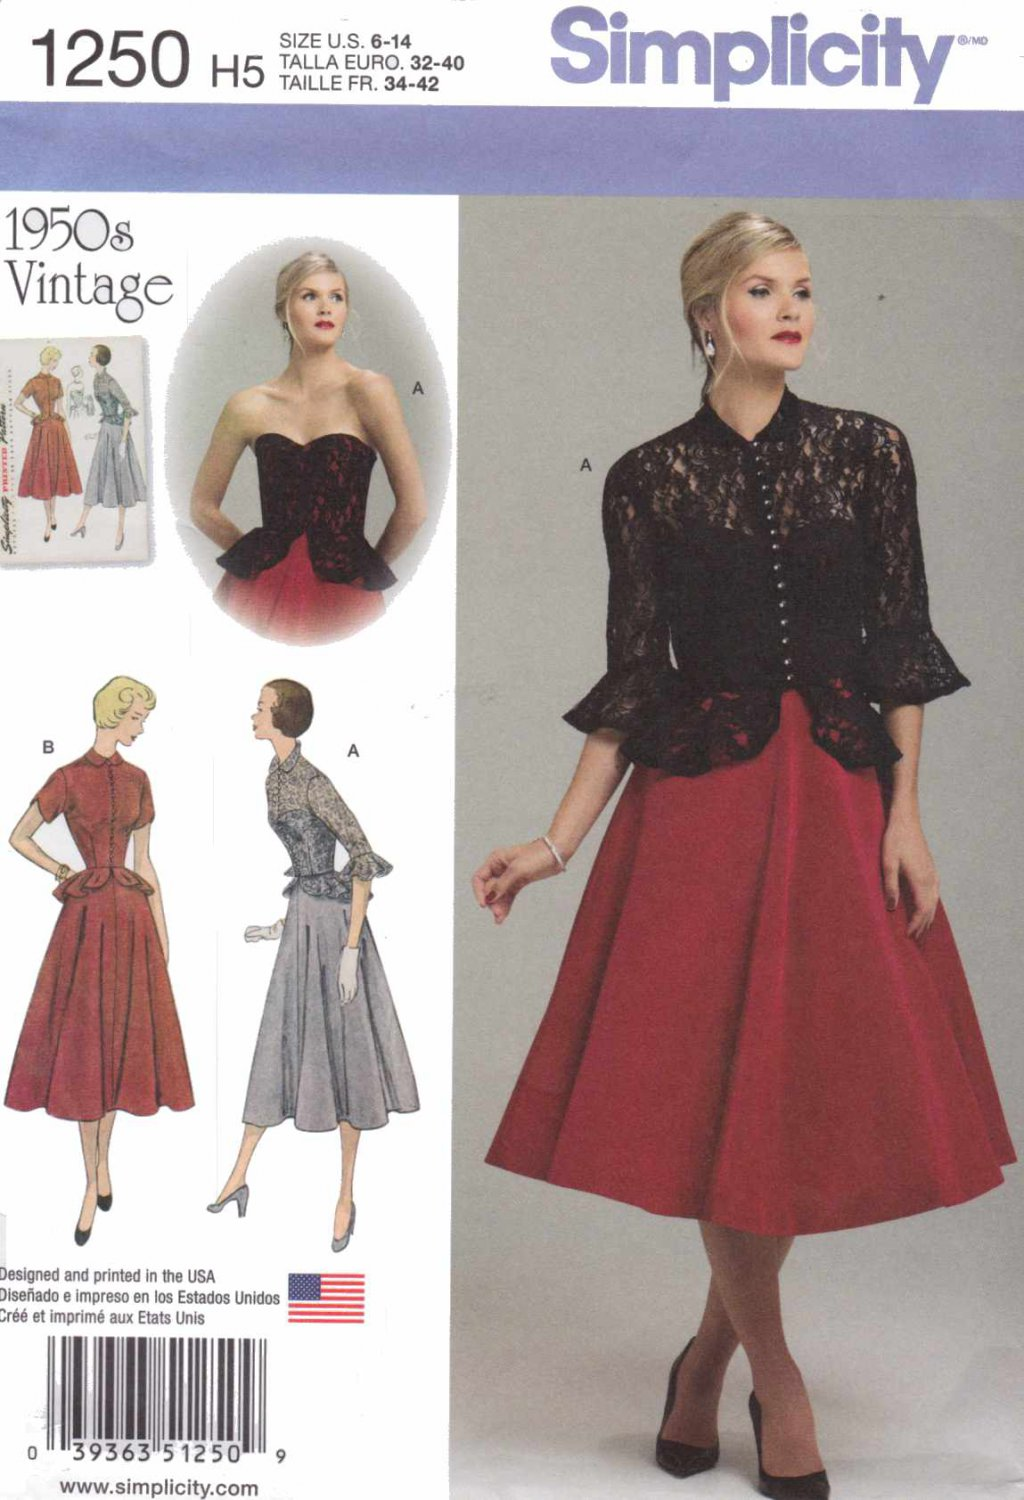 Simplicity Sewing Pattern 1250 Misses Size 6-14 Vintage 1950's Style Strapless Dress Jacket Peplum